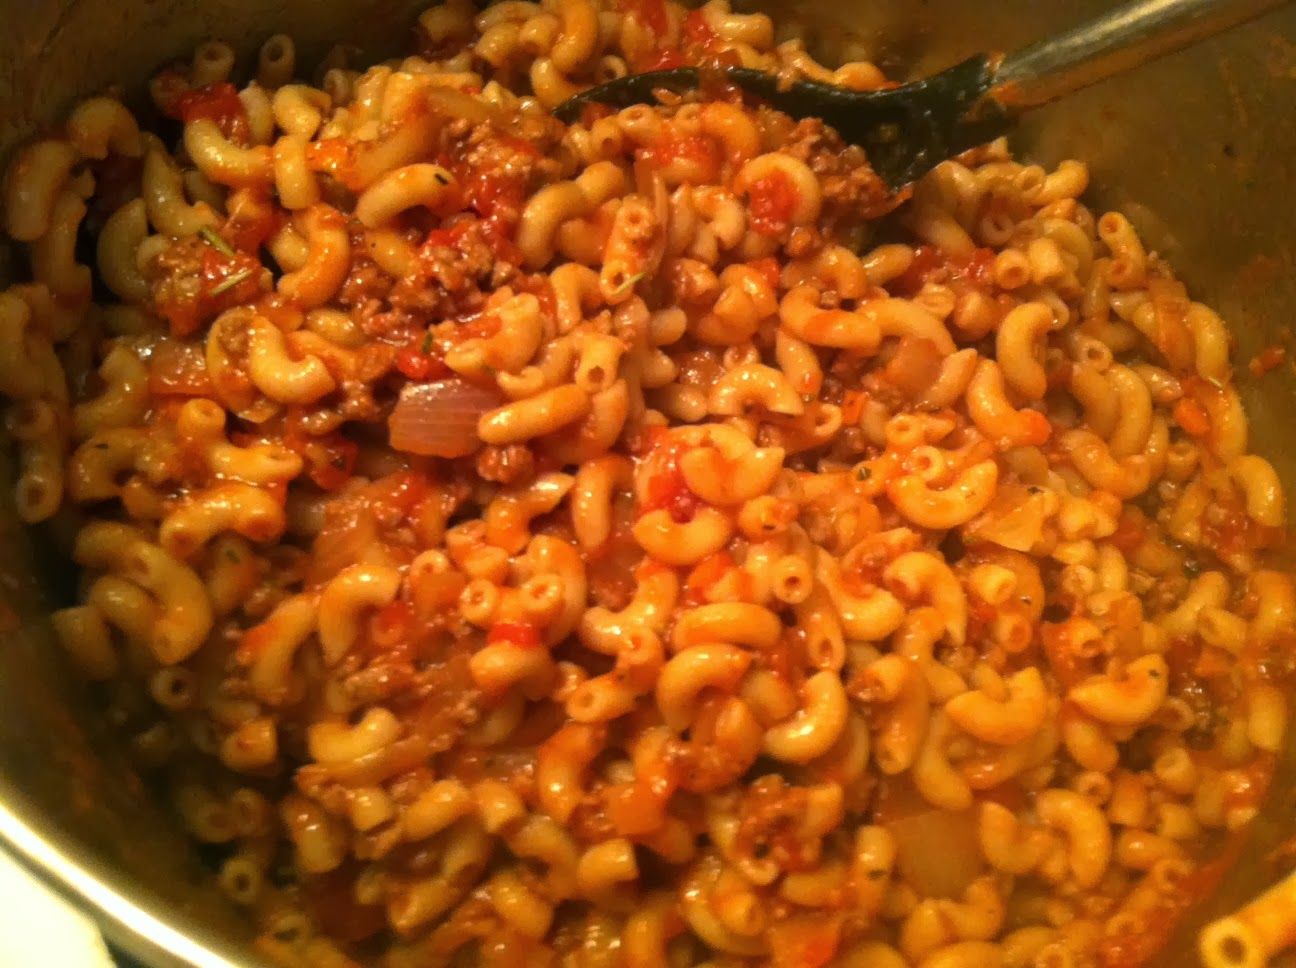 Stirring up Pasta with Super-Tasty Meat Sauce for #WeekdaySupper